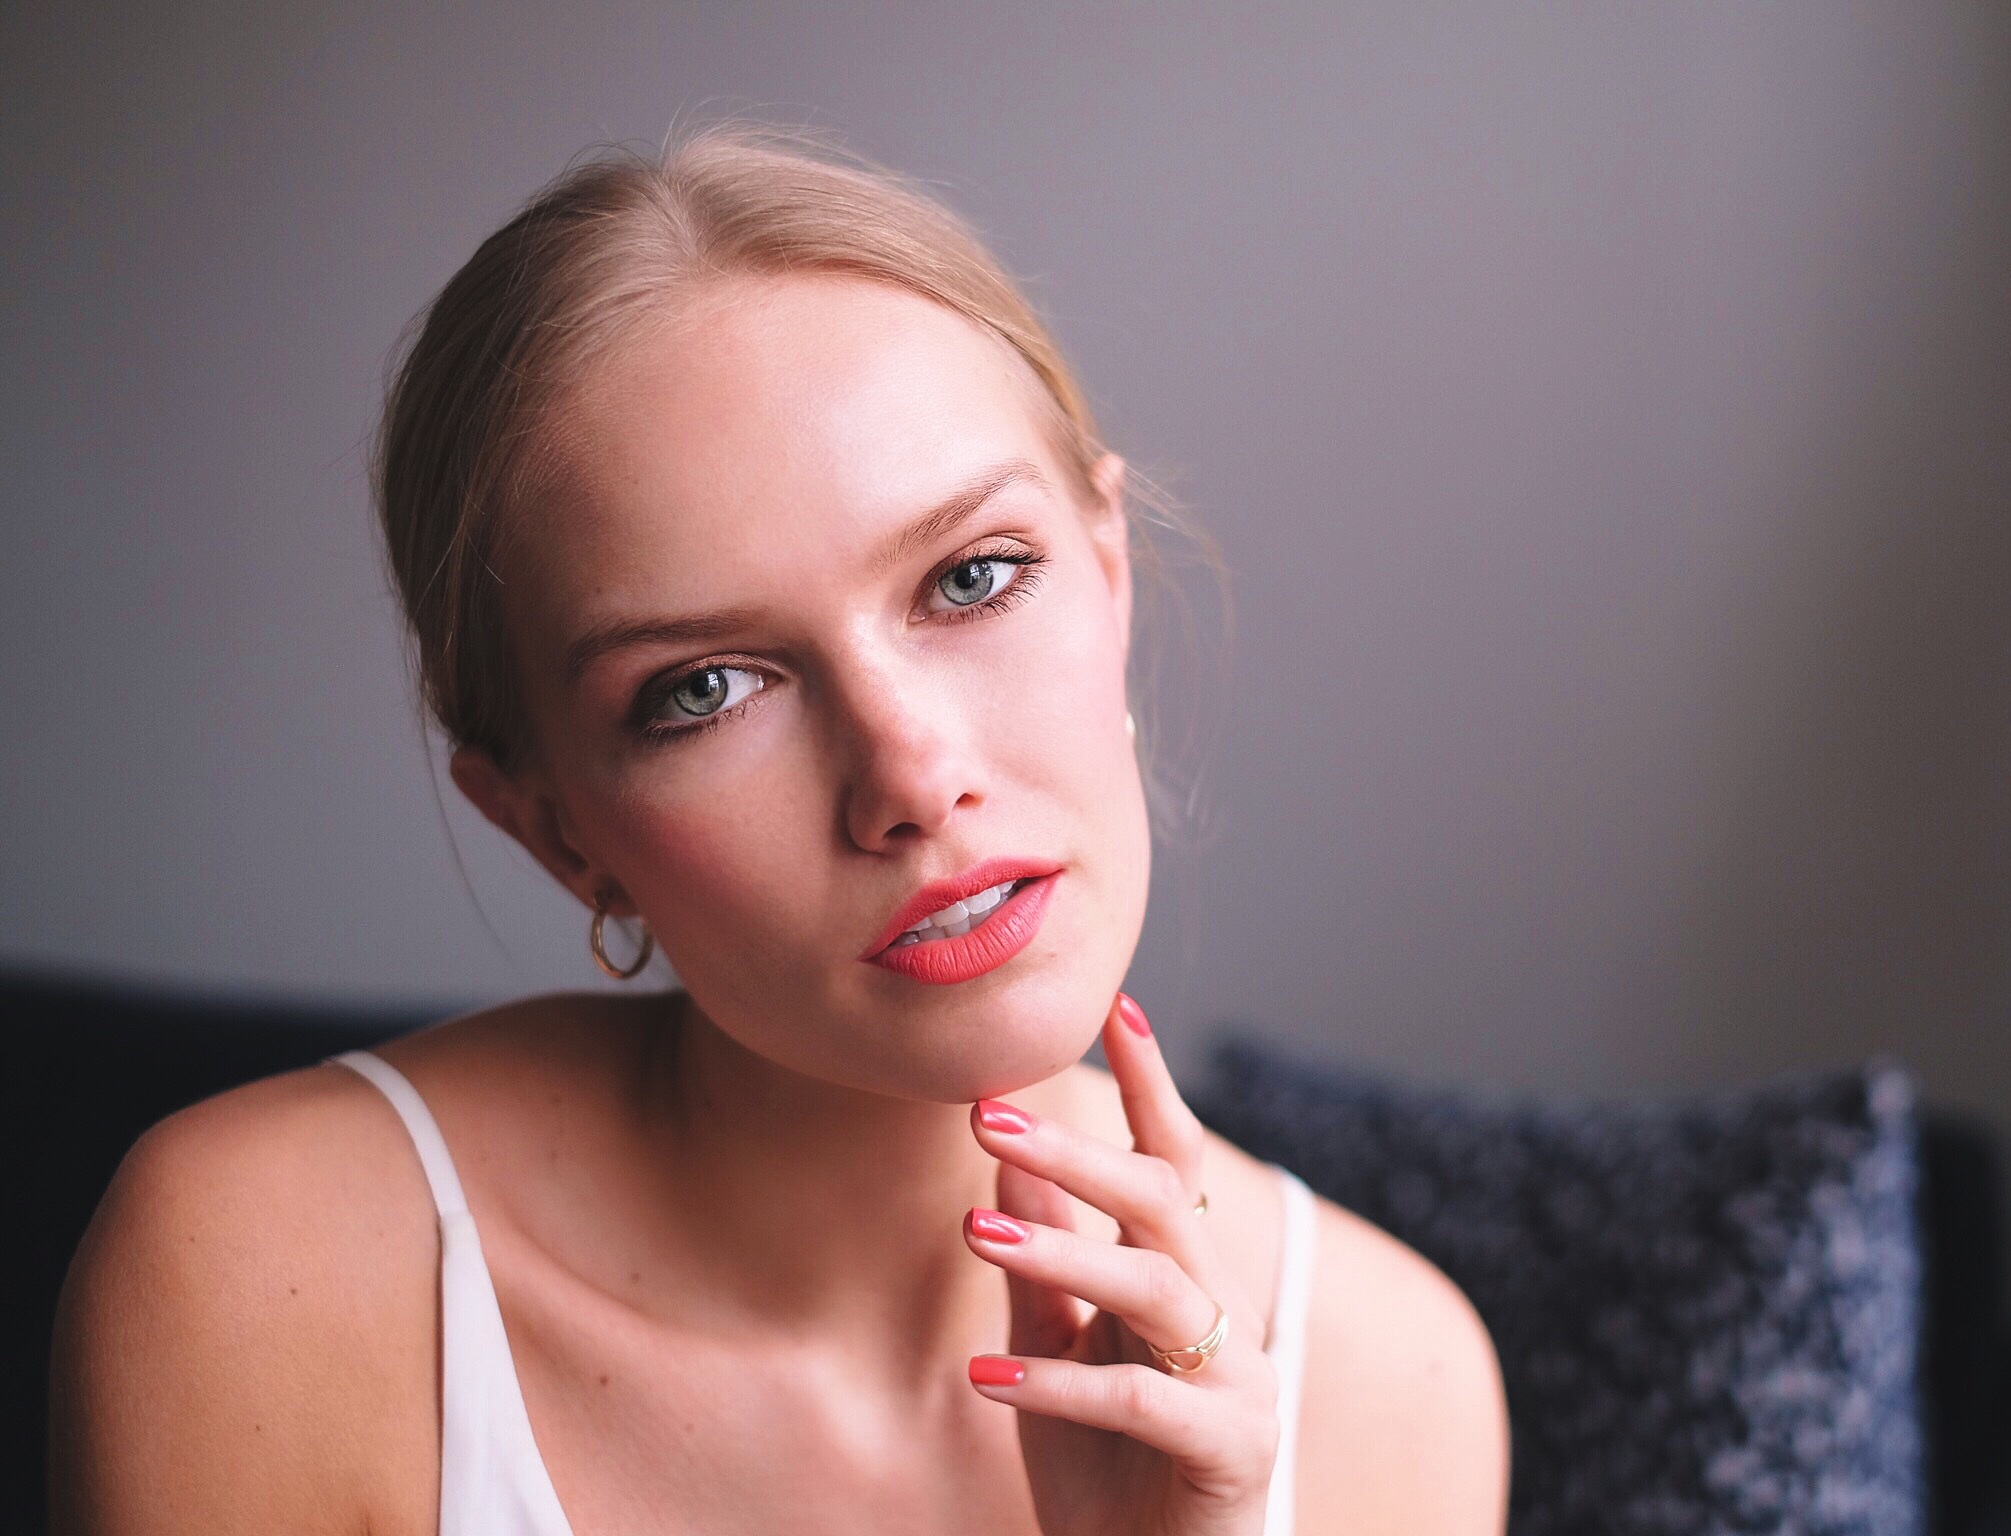 CORAL & PEACH - Here I have gone for peachy coral lips and cheeks, giving me a nice summery look. These pink shades, which are going more towards orange, are best used when you have a bit of a summer glow to your skin. So mostly suitable for summer!I love when you can use a product both for your lips and cheeks. Here I have used a matte liquid lipstick from Bourjois called Rouge Edition Velvet. The shade I'm using is the '04 Peach Club'. And yes, you can also use it on your cheeks even though it's a lipstick.